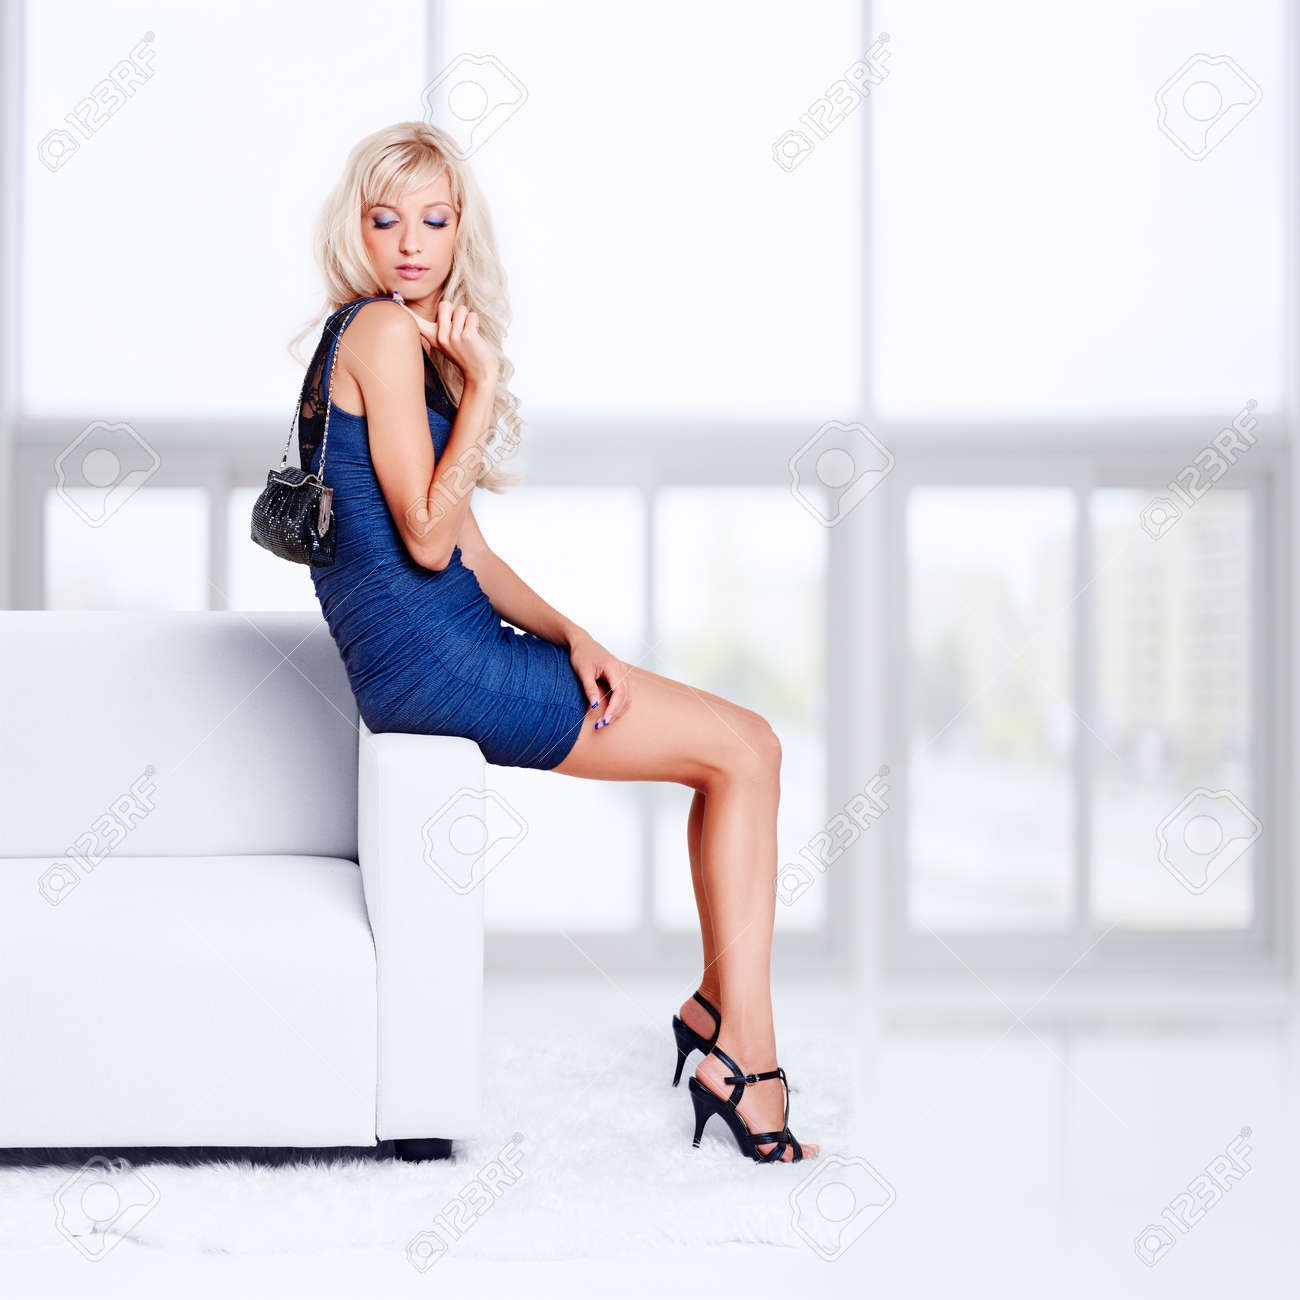 full-length portrait of beautiful young blond woman with handbag sitting on couch with white furs on floor Stock Photo - 12106078